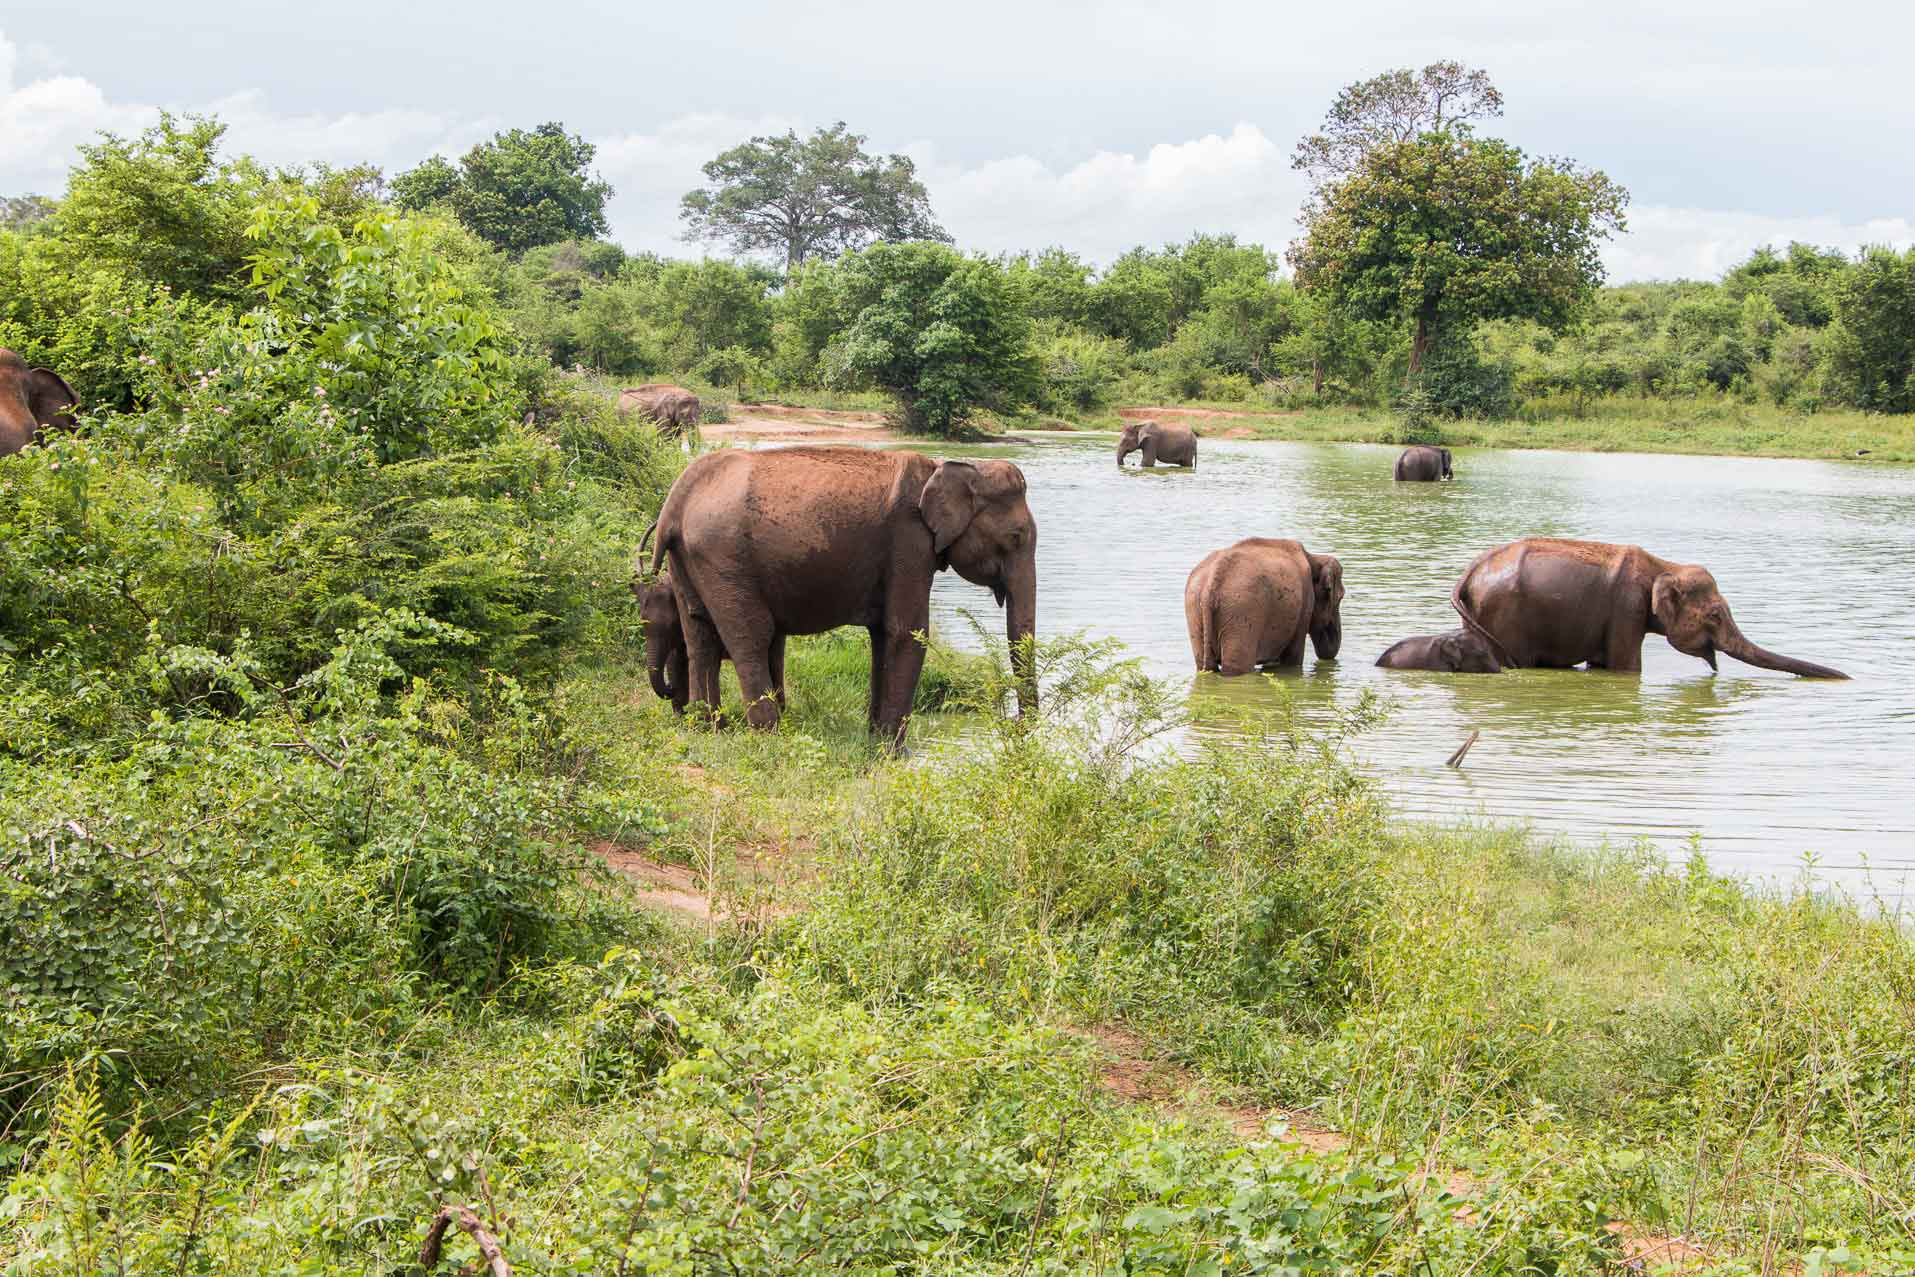 Elephants taking a bath at Udawalawe, Sri Lanka